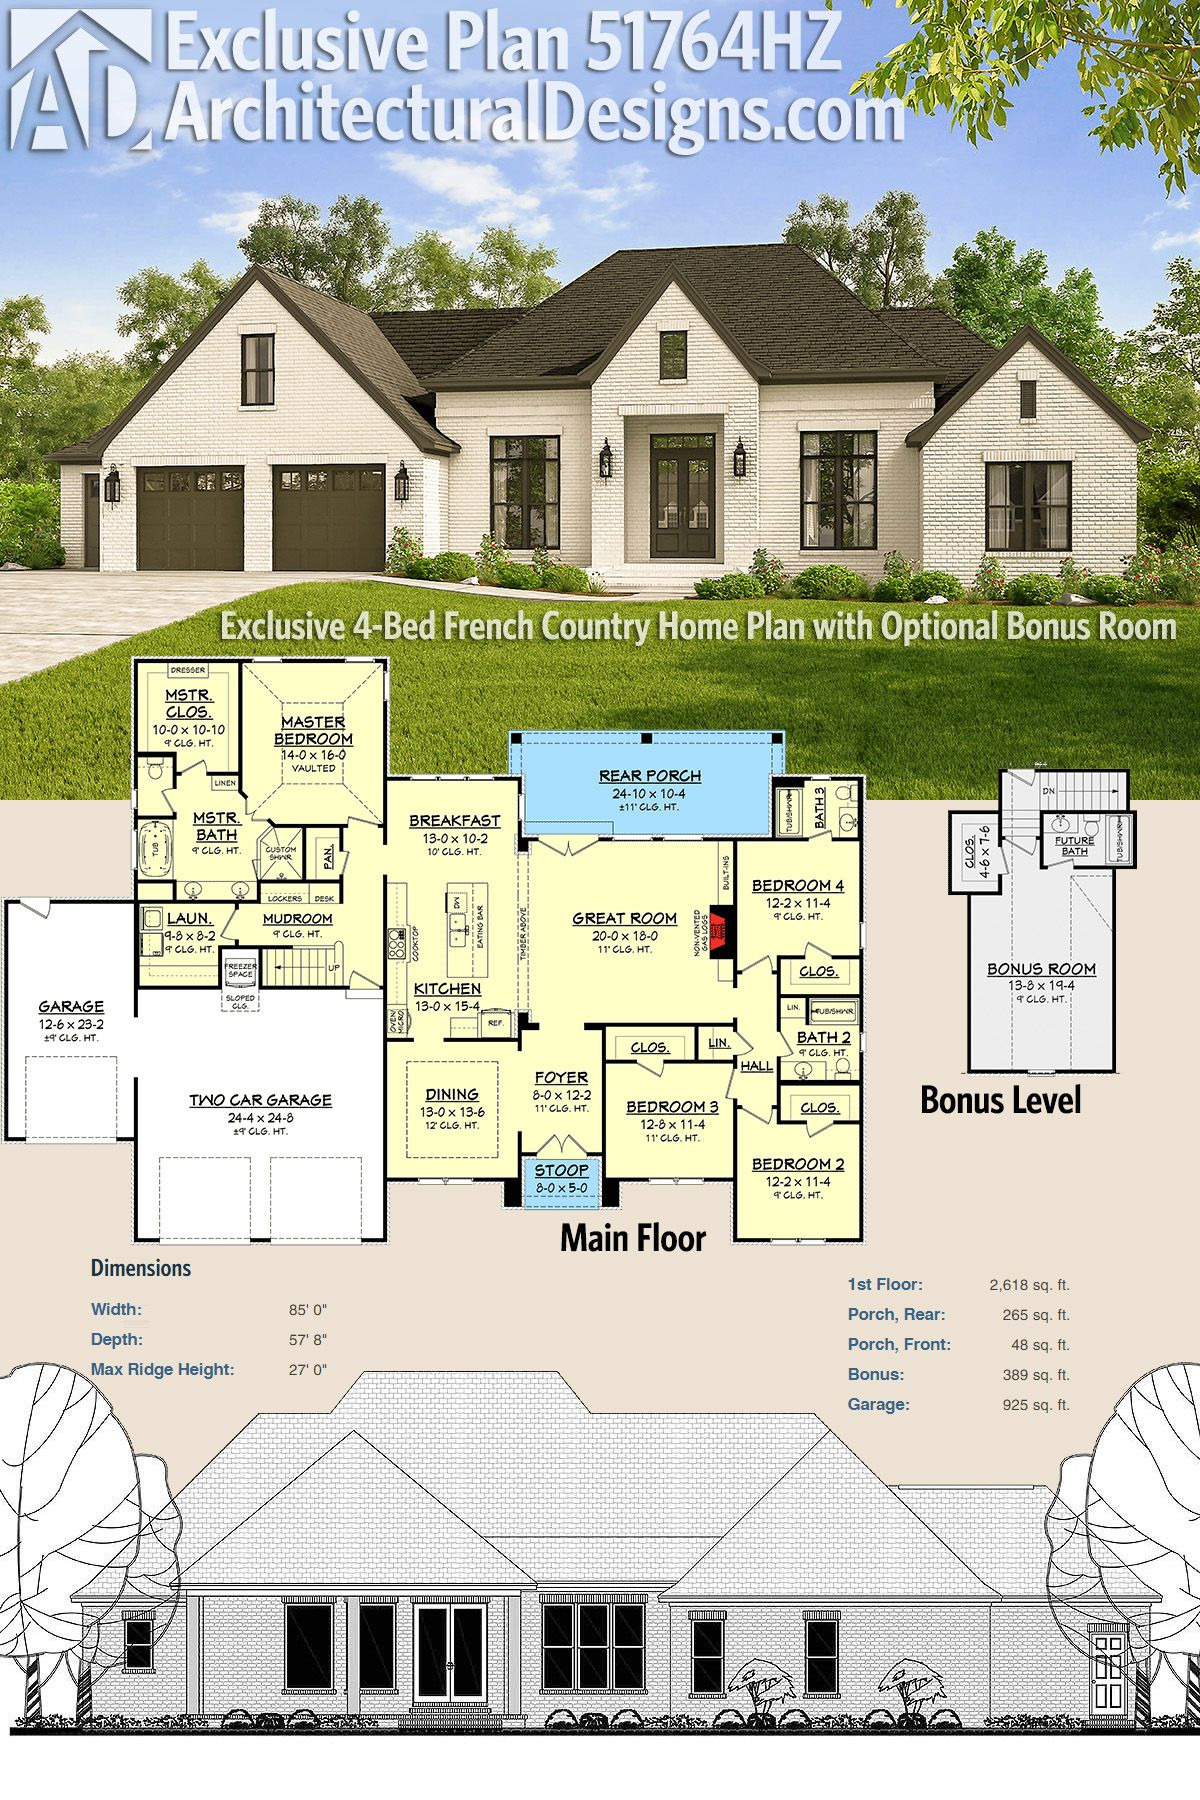 Country Homes House Plans Awesome Plan Hz Exclusive 4 Bed French Country Home Plan with